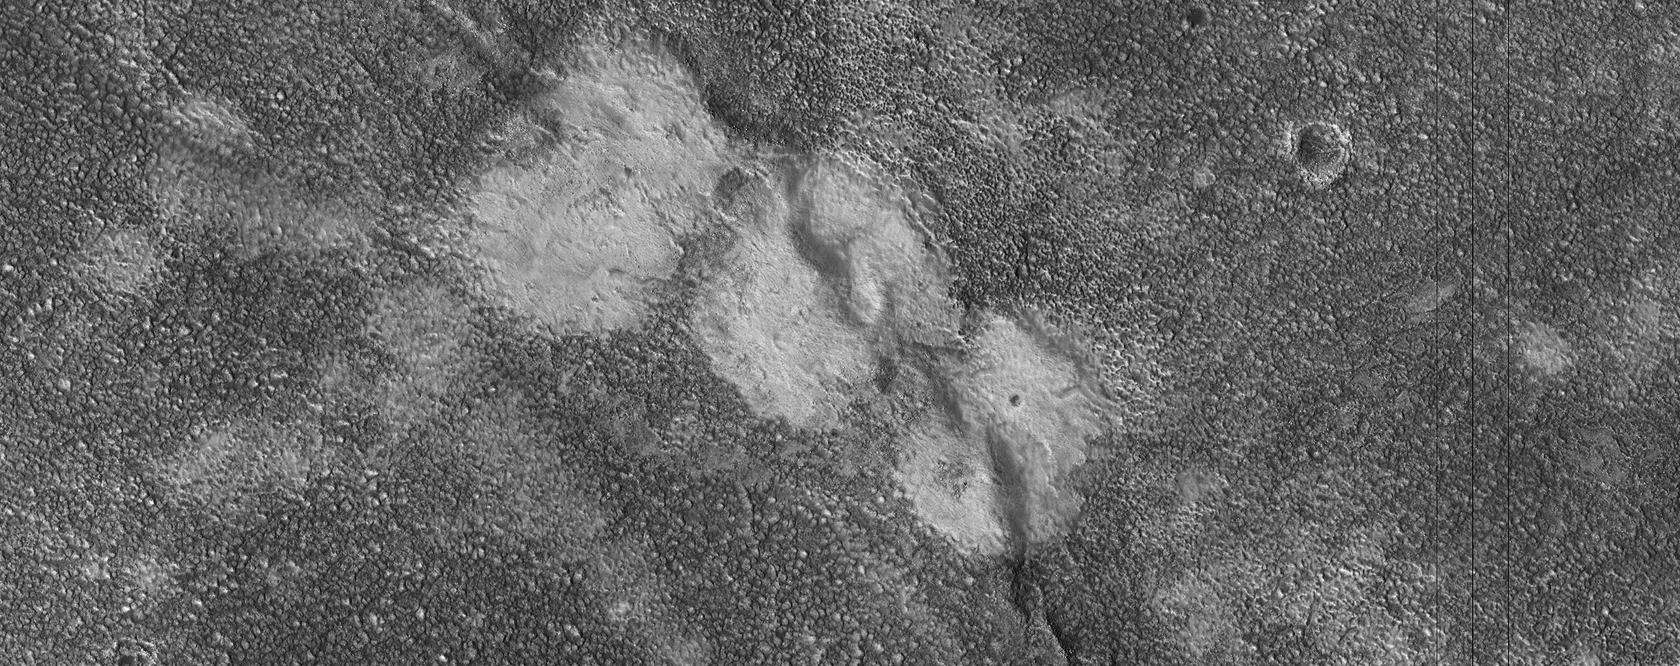 Pitted Cones on Ridge in Chryse Planitia